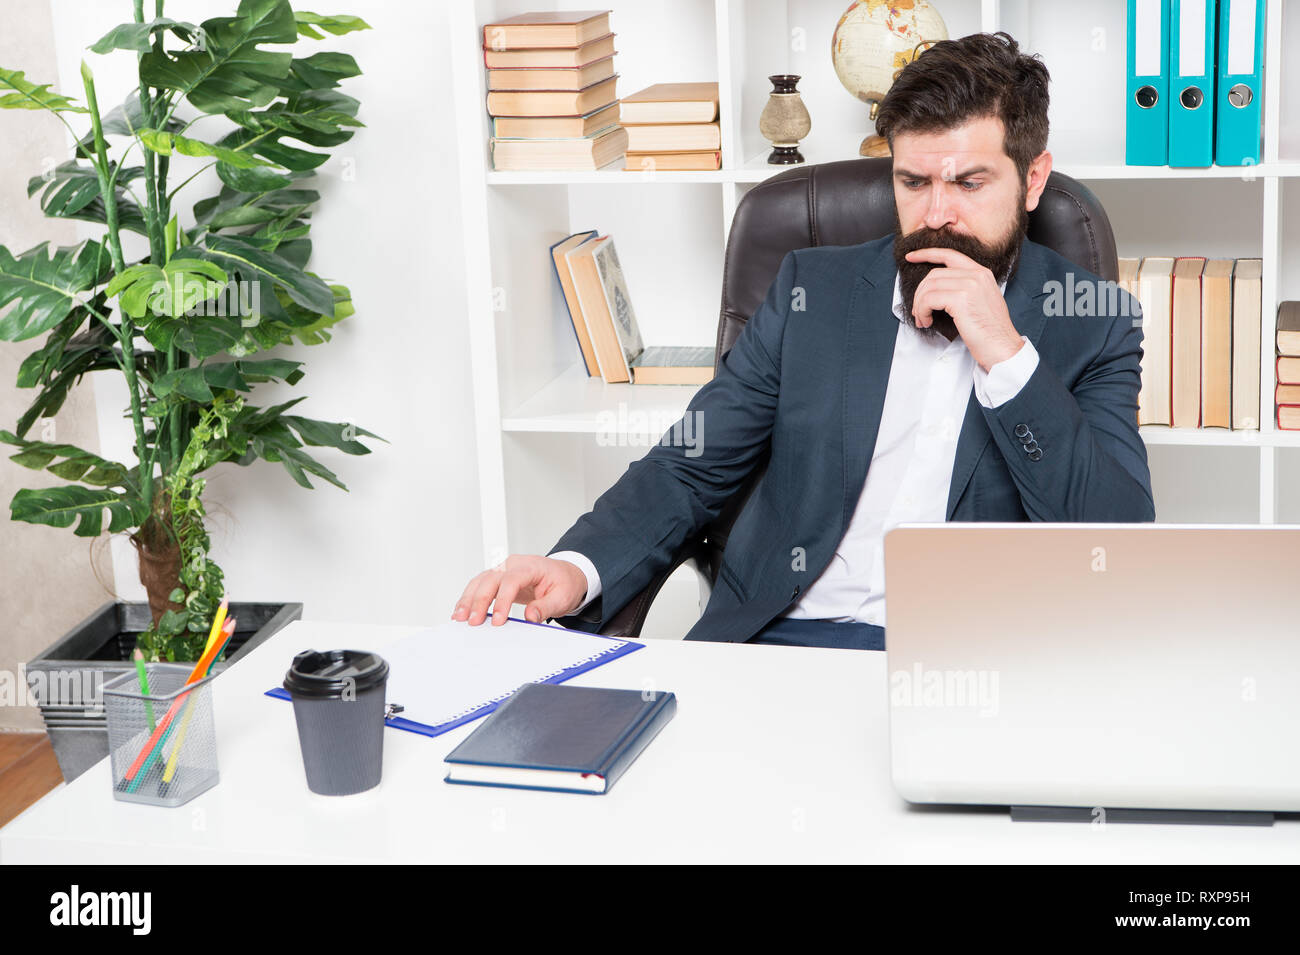 Office routine. Manager solving business problems. Businessman in charge of business solutions. Developing business strategy. Risky business. Man bearded hipster boss sit office with laptop. - Stock Image